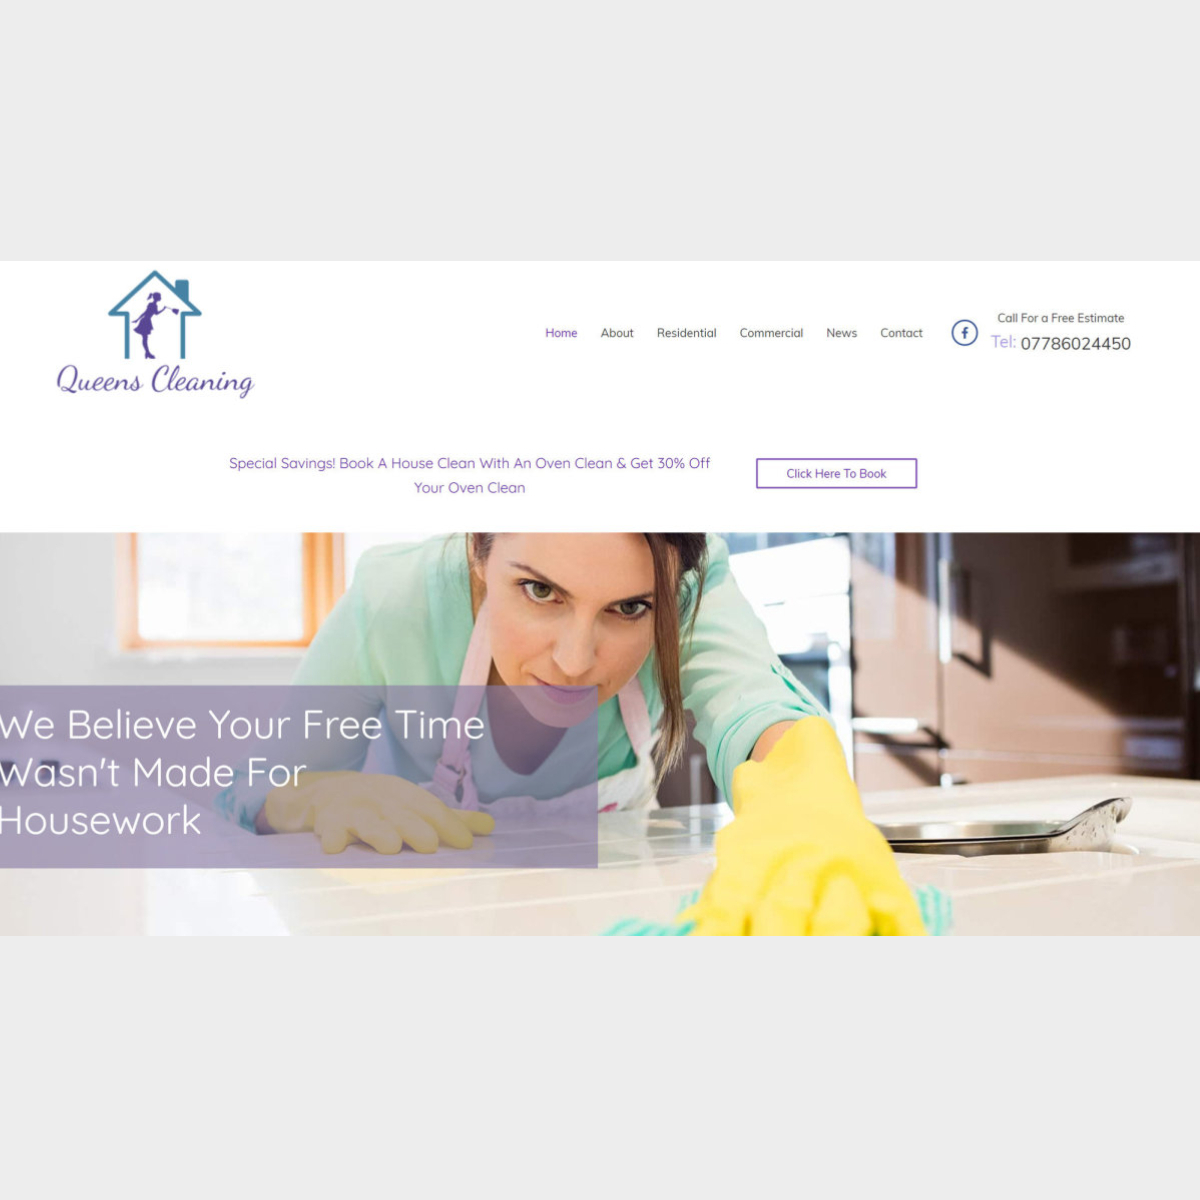 Homepage of Queen's Cleaning Services - Designed & developed by The Marketing Rocket - Taunton, Somerset